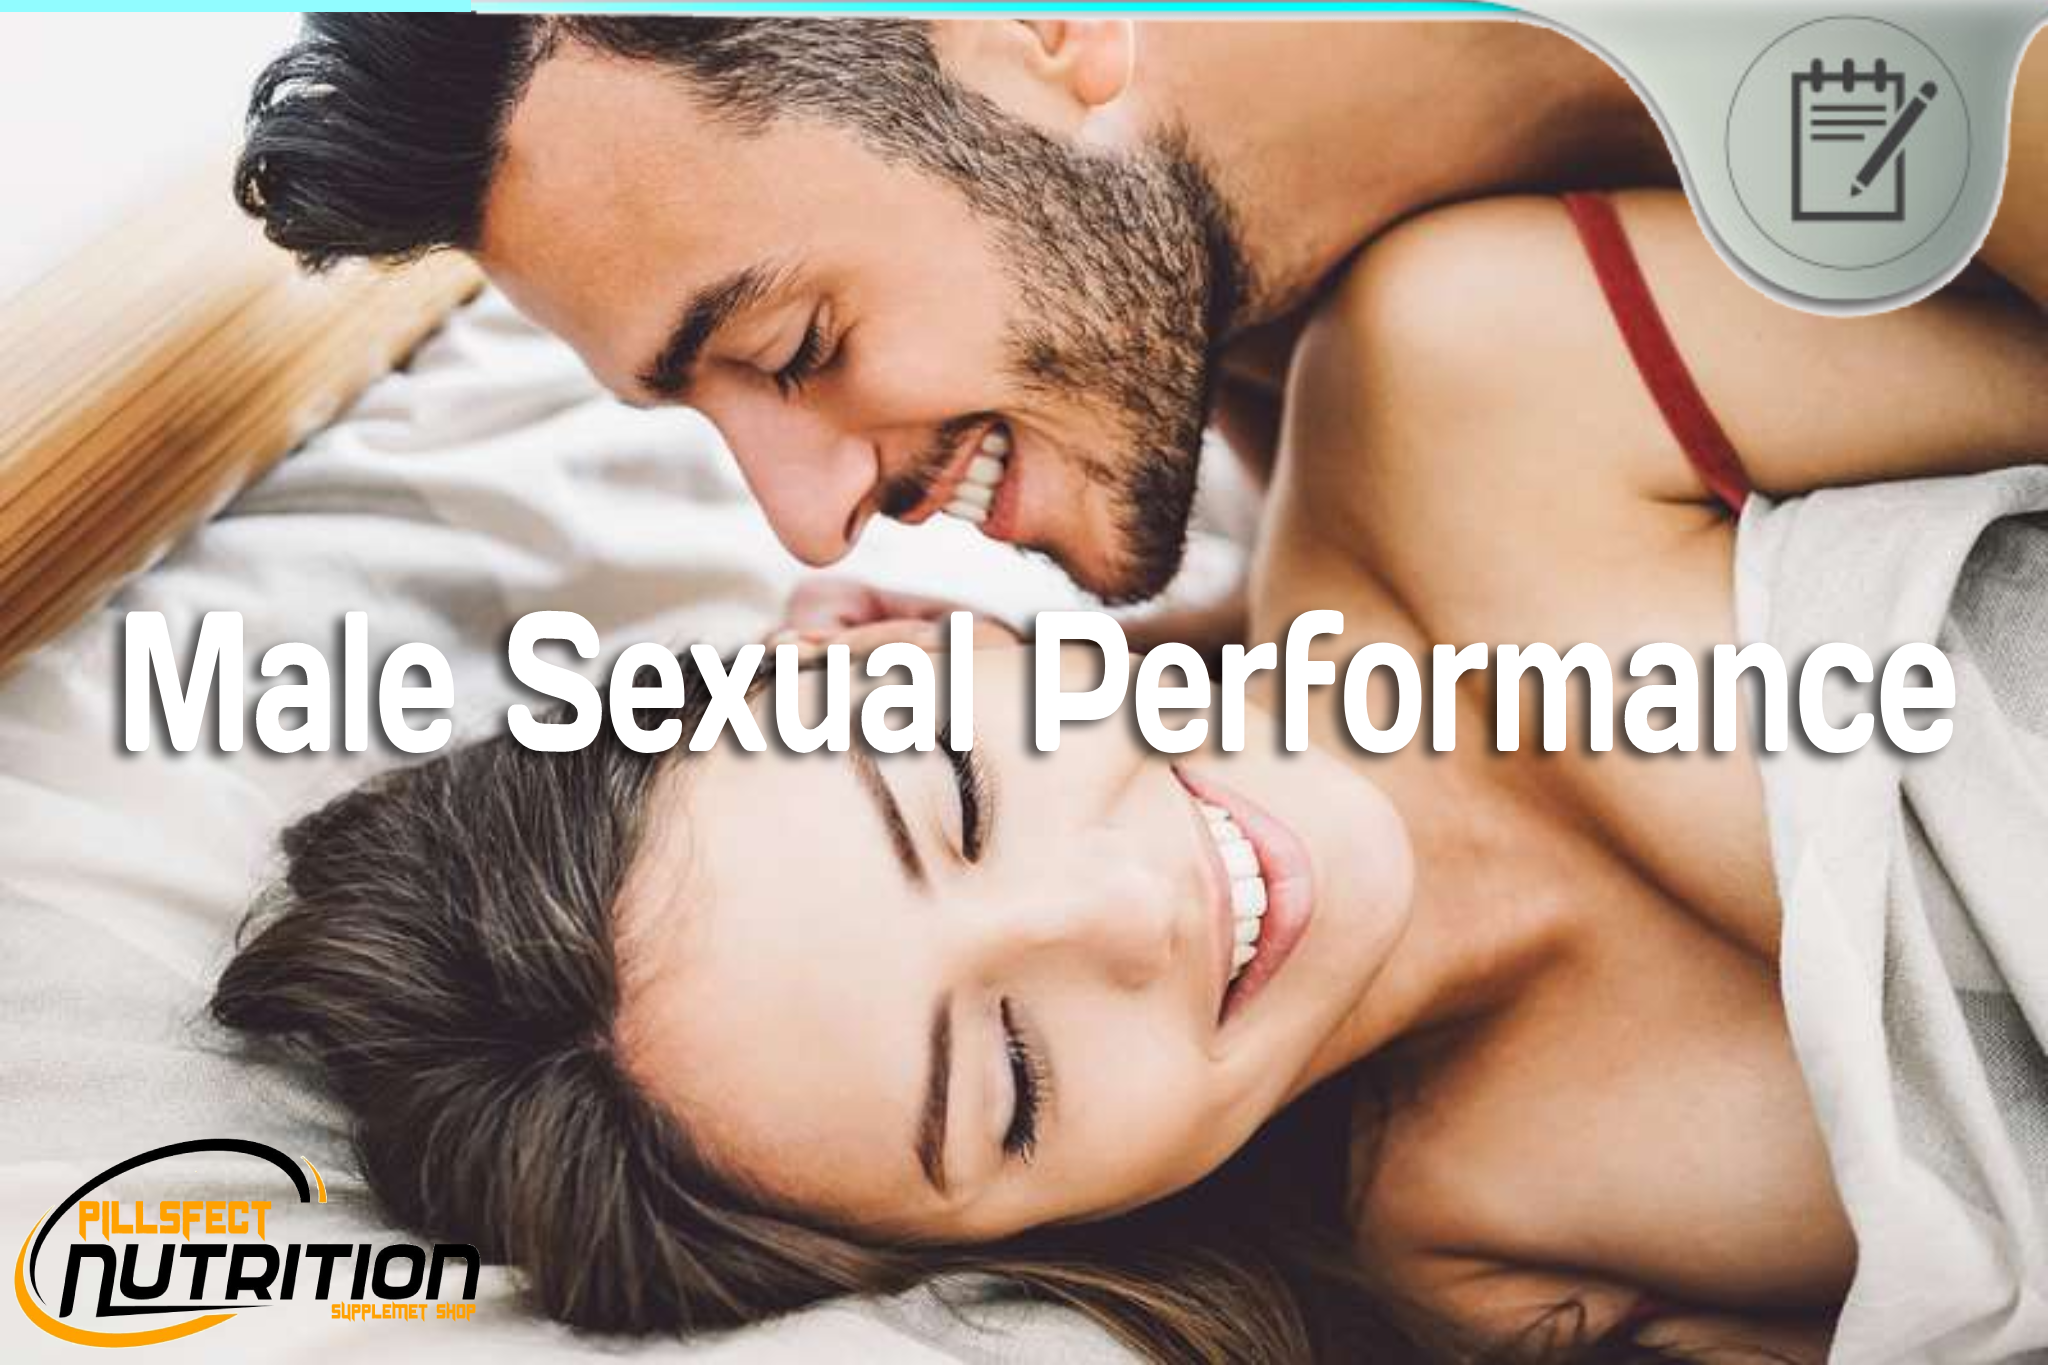 Male Sexual Performance - What Makes a Man to Release Quick?